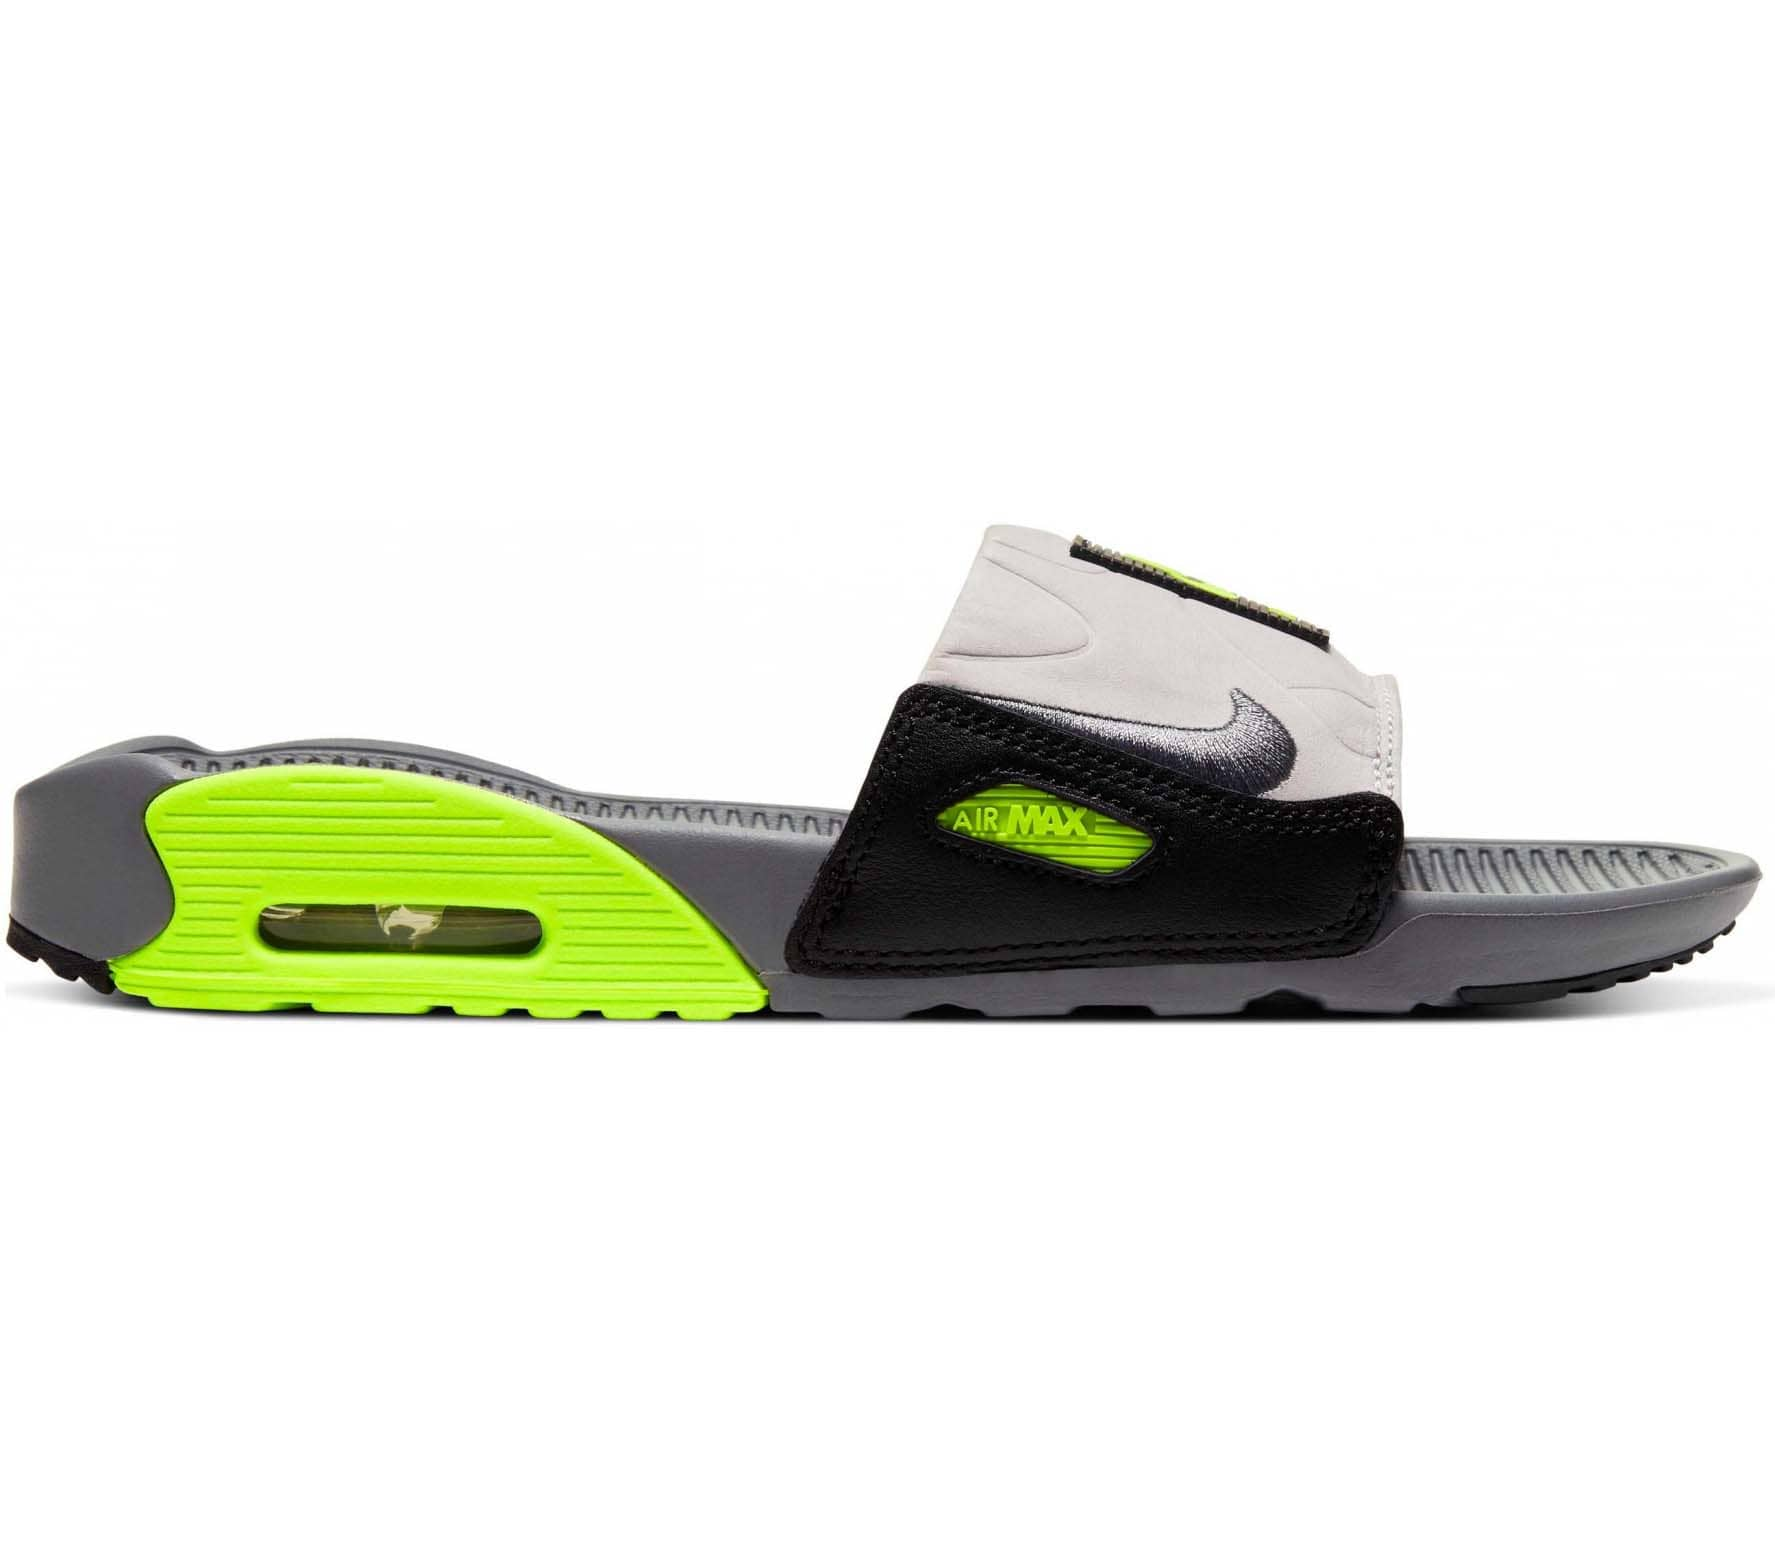 Air Max 90 Damen Slides